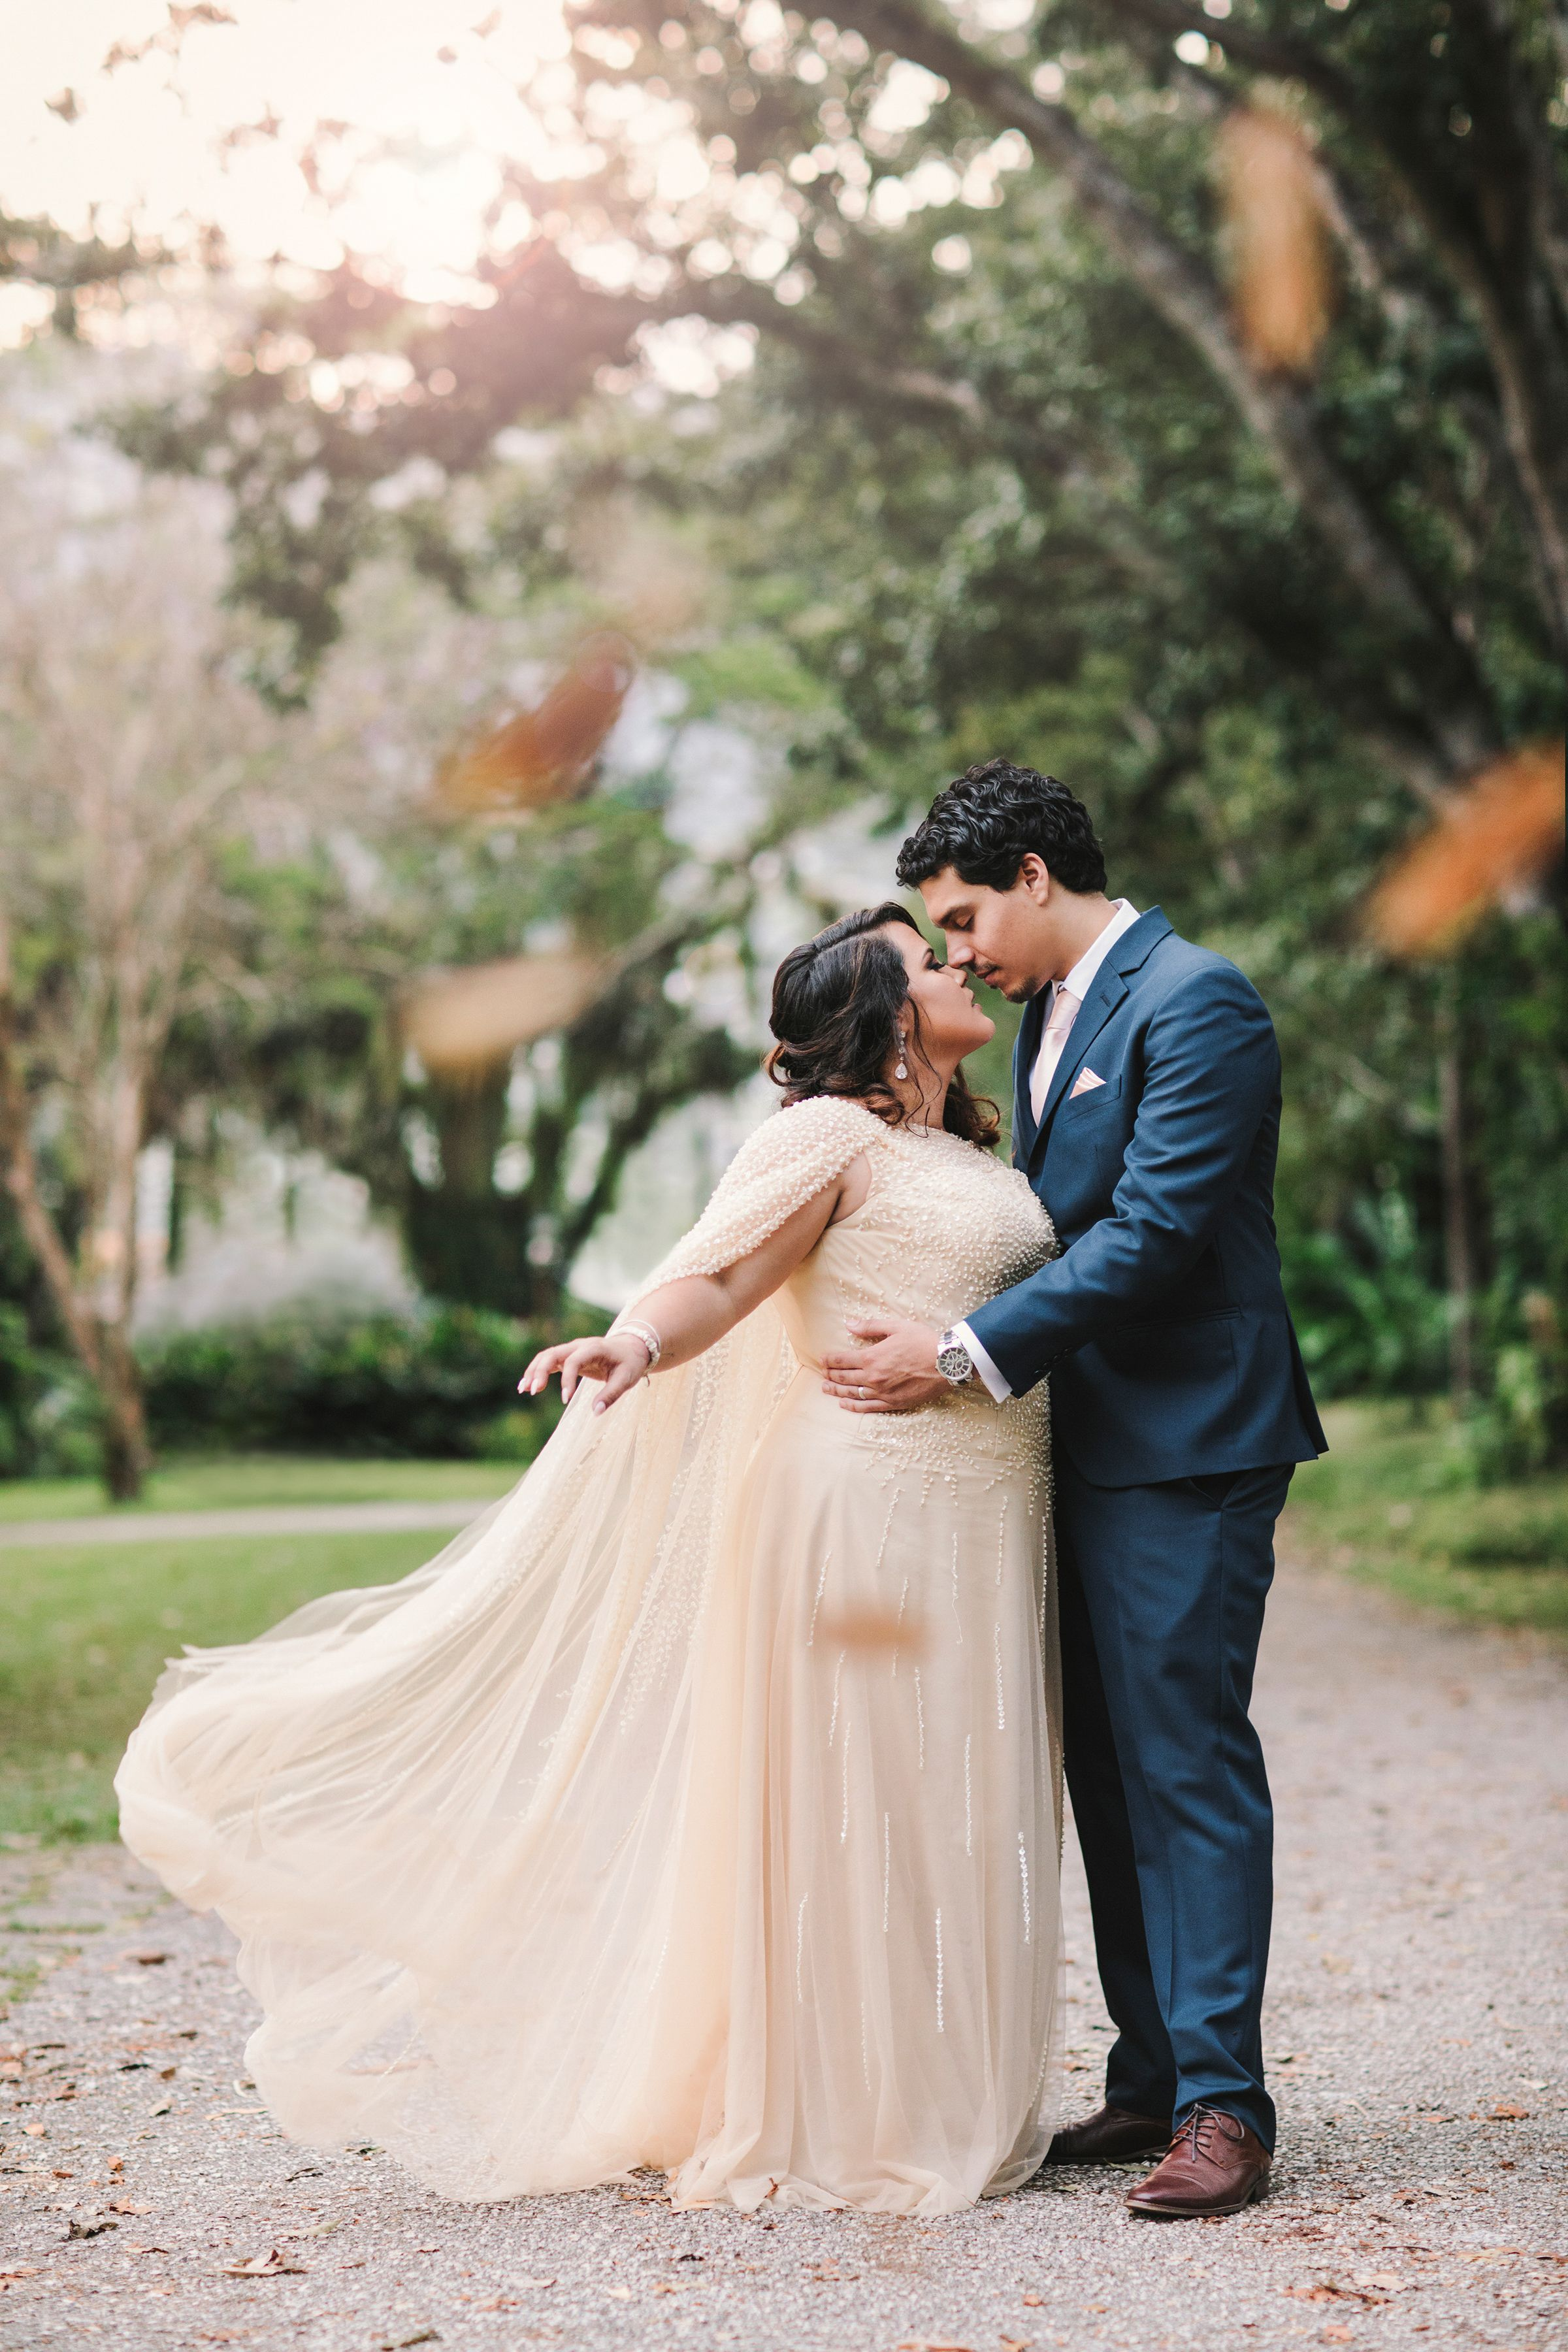 Lori Mark S Celebratory Blend Of Love And Family In Trinidad Tobago Wedding Photography Elegant Wedding Inspiration Romantic Wedding Inspiration